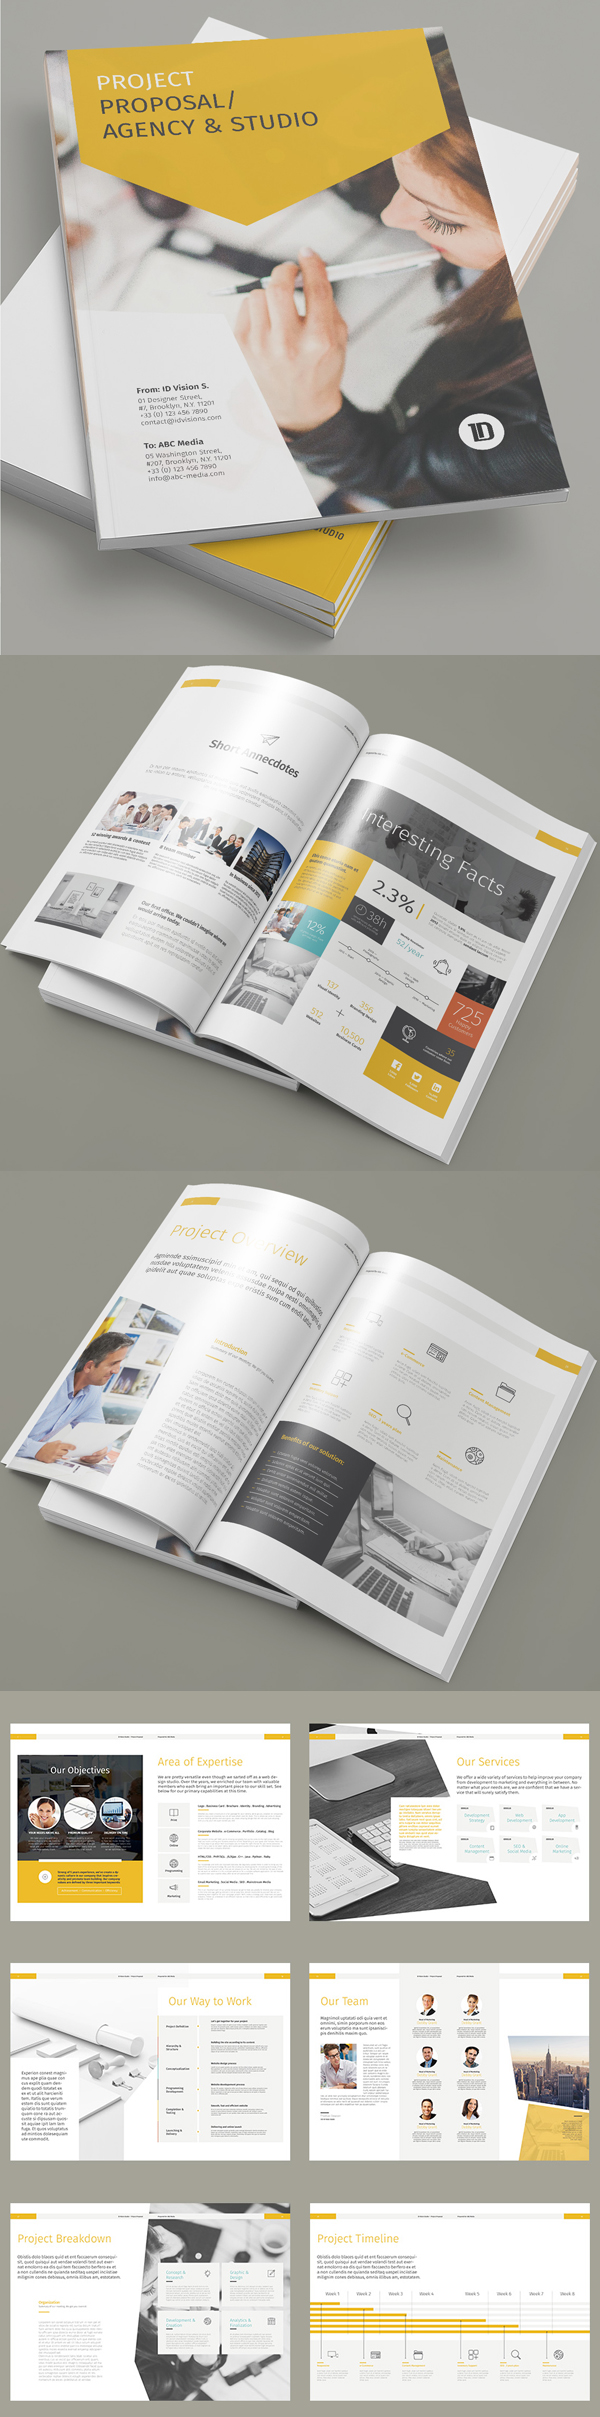 100 Professional Corporate Brochure Templates - 13